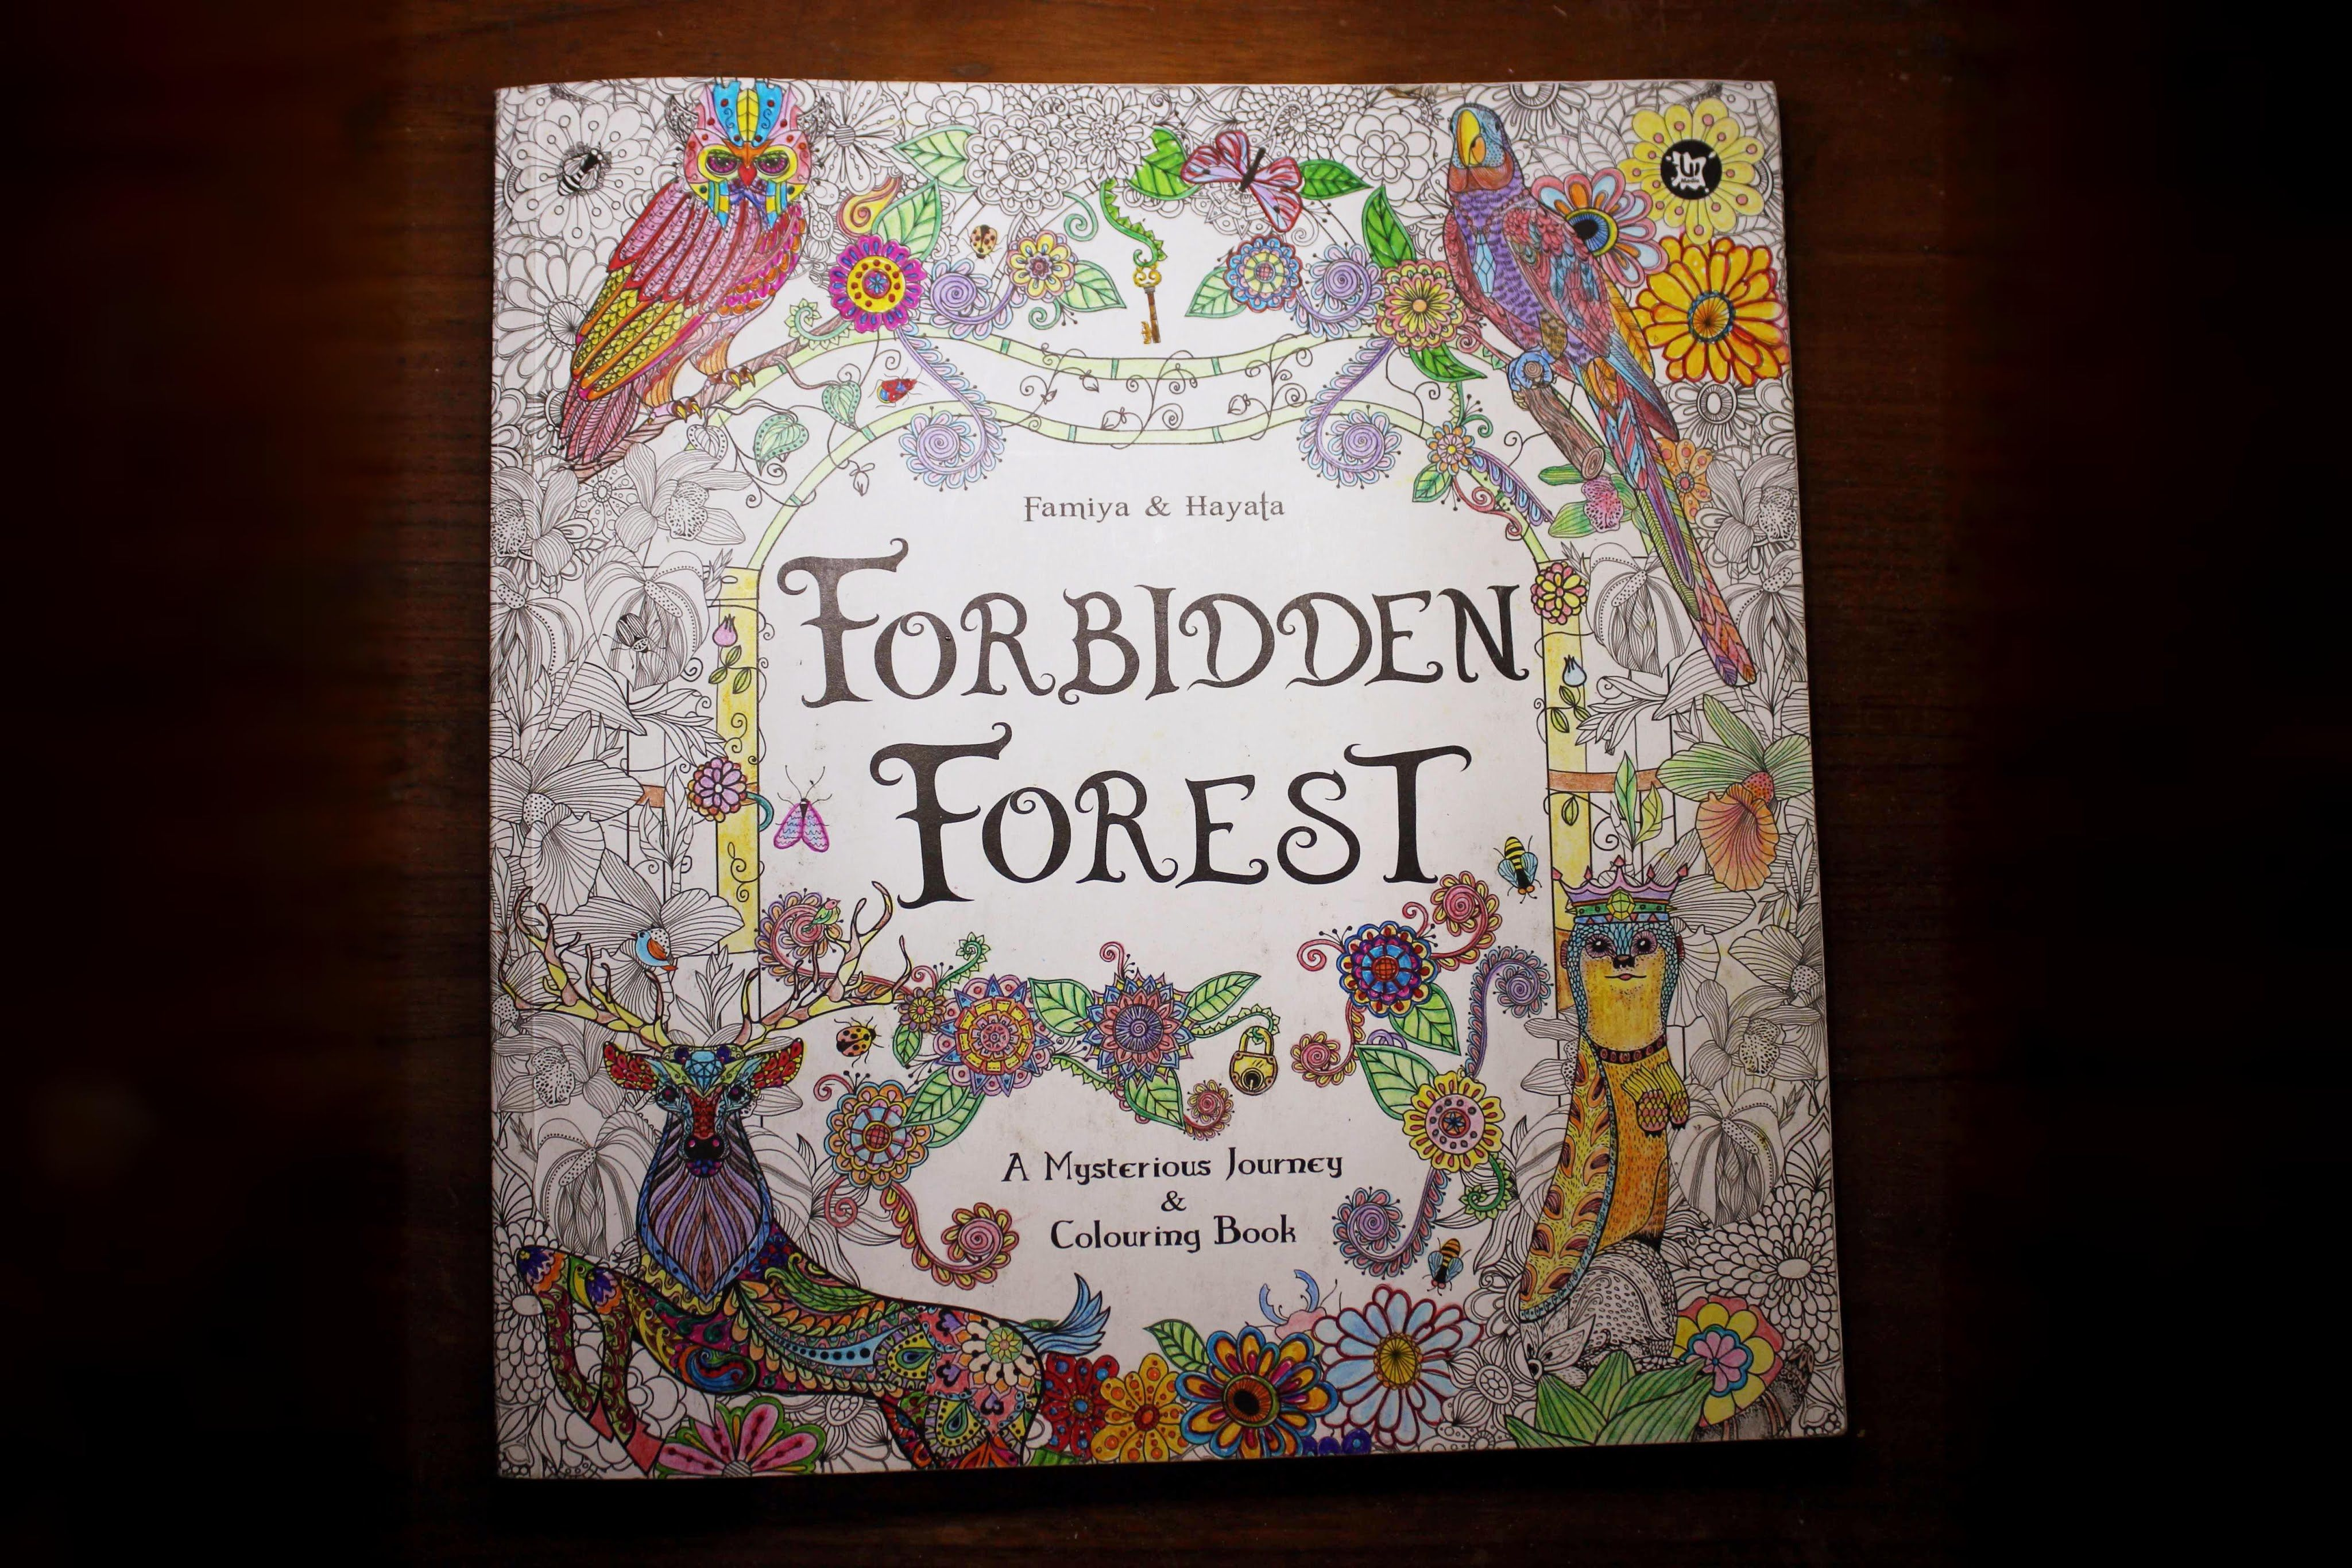 The enchanted forest coloring book review - Forbidden Forest A Mysterious Journey Colouring Book Author S Famiya Hayata